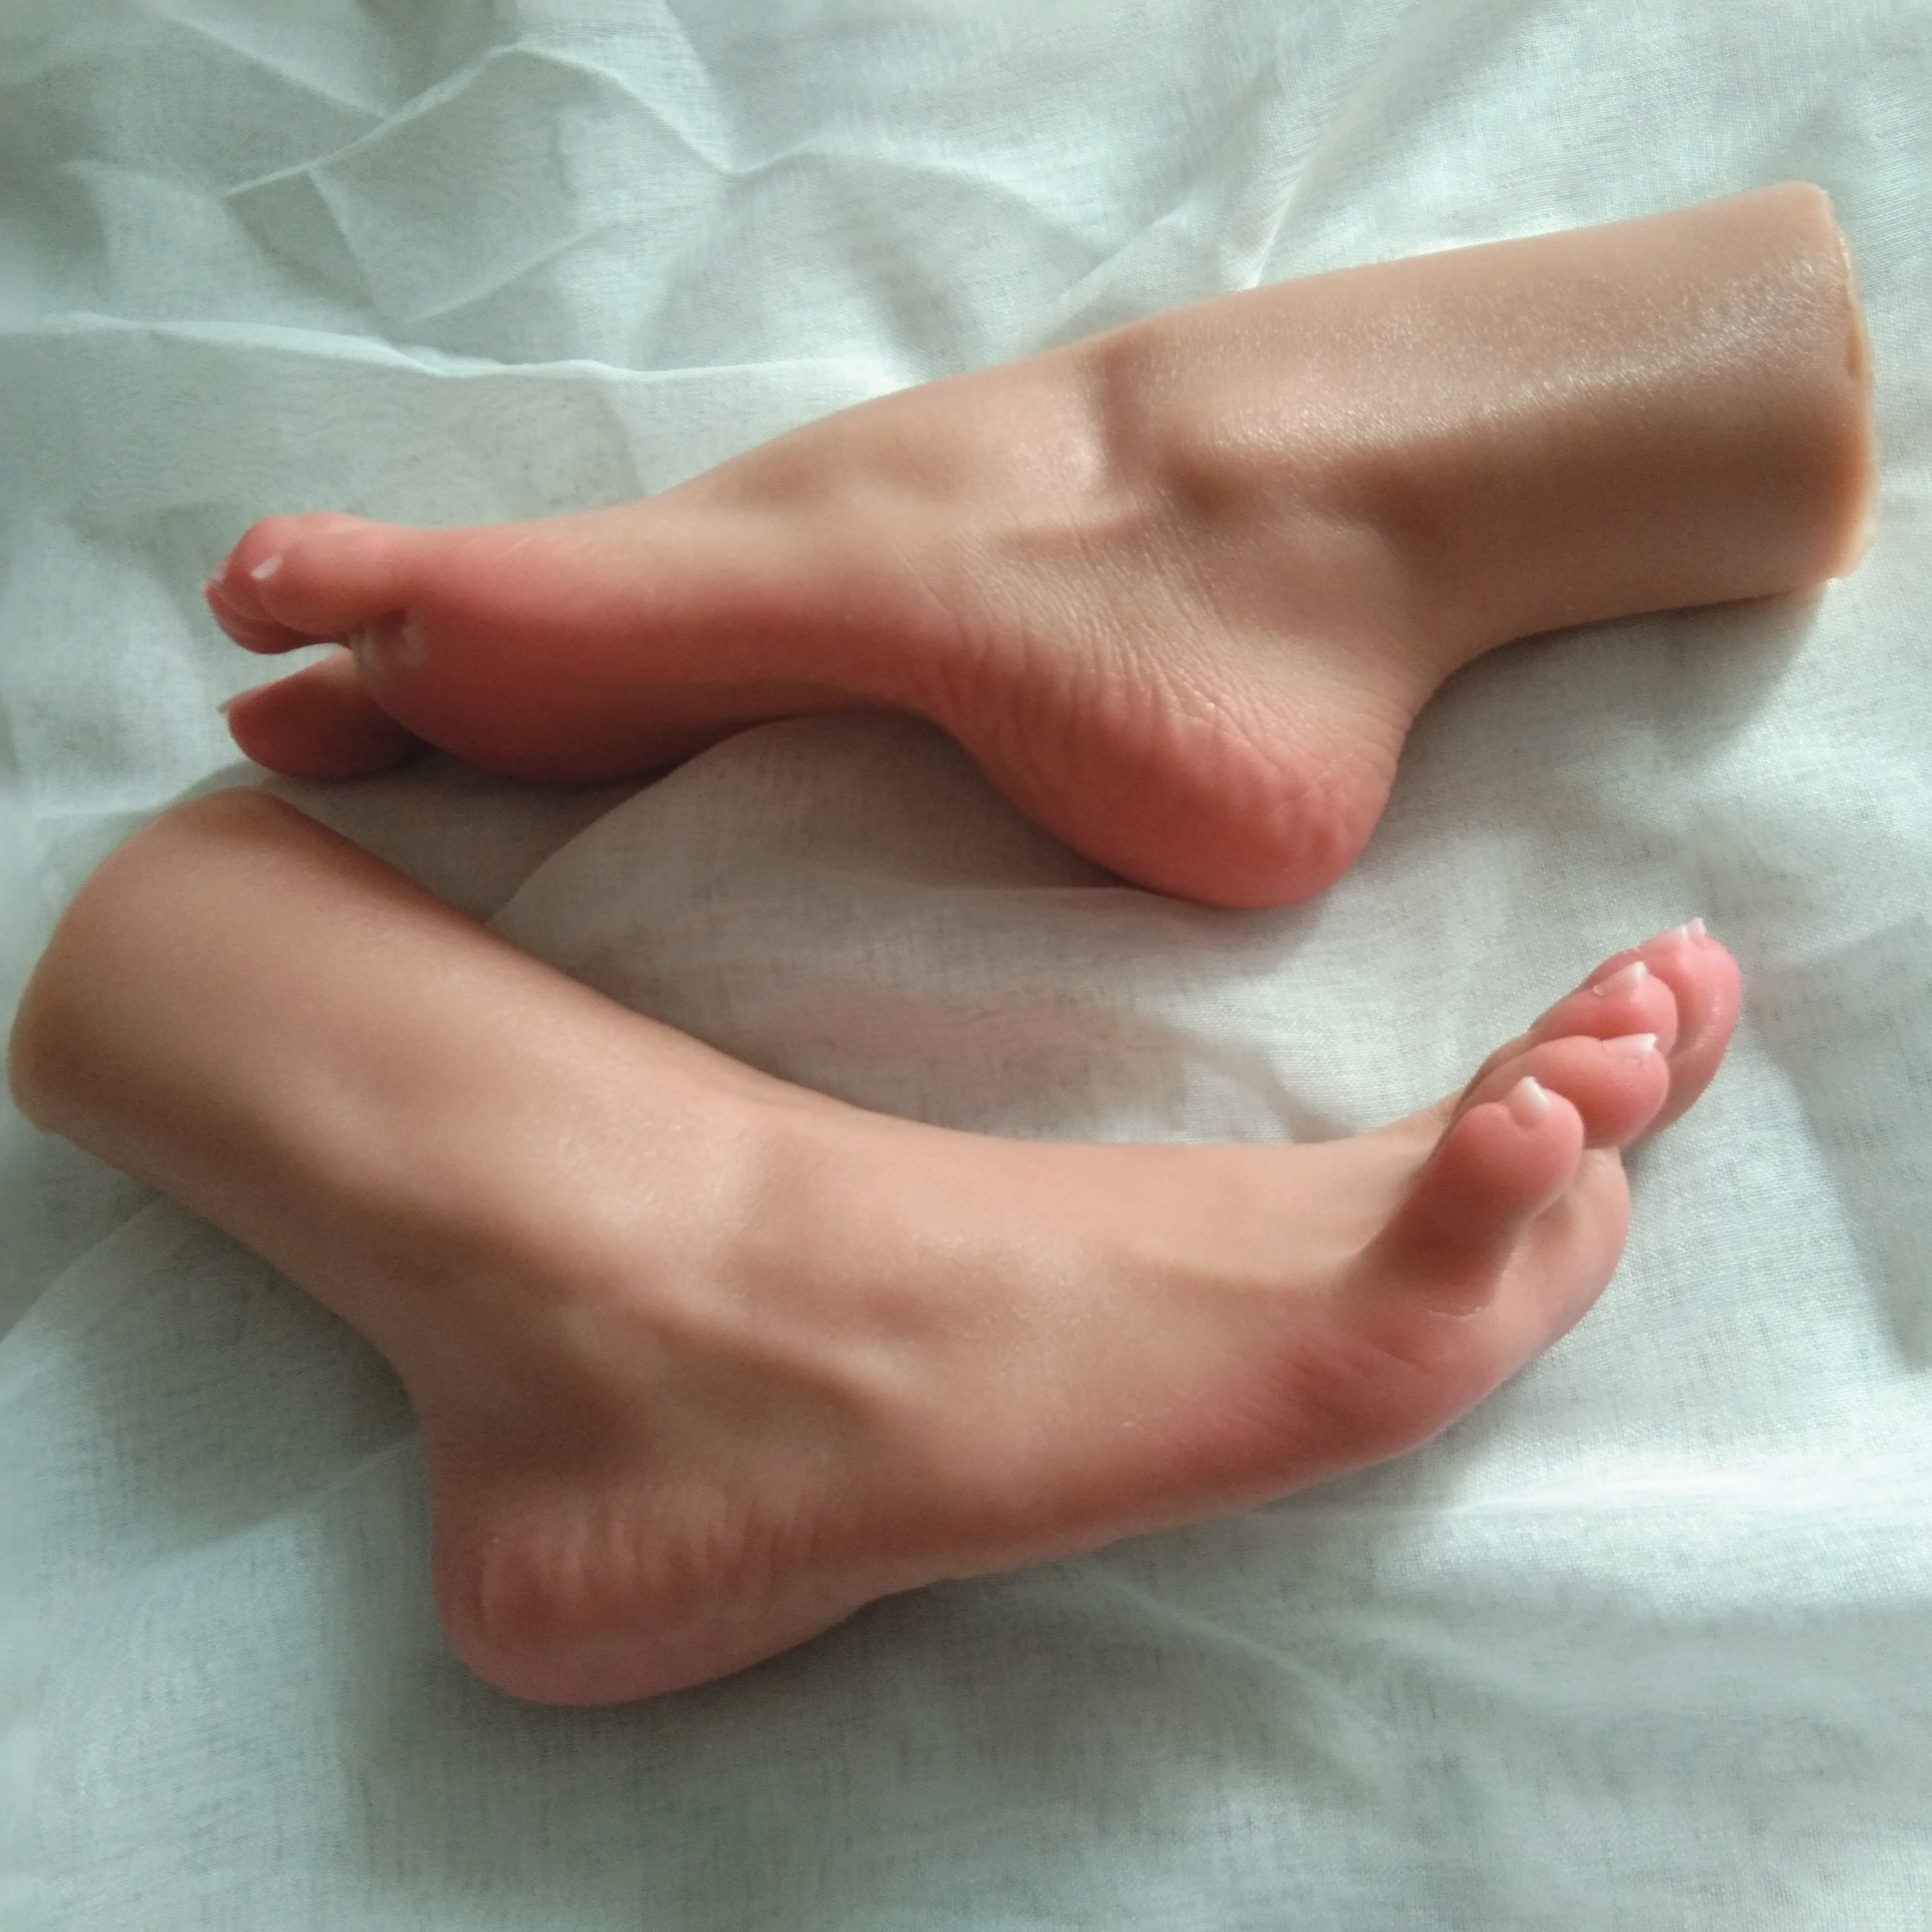 1 Pair Sexy  Foot Feet Pointed Toes Fetish Toys Model Sex Dollsfor Feet Job Real Feel Tanning Skin